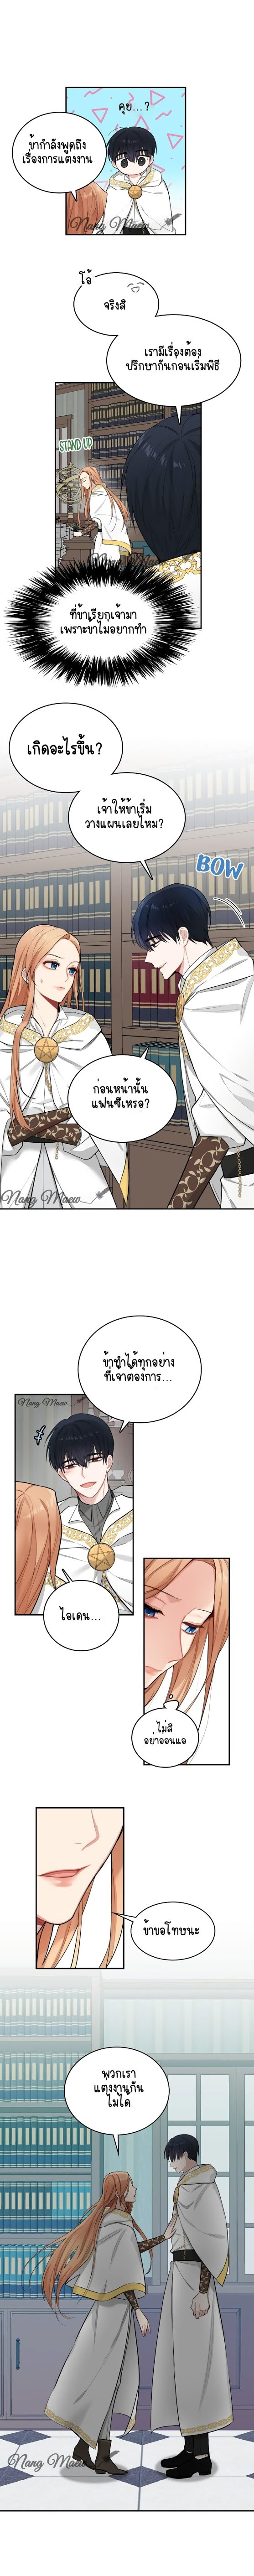 The Newlywed Life of a Witch and a Dragon - หน้า 18